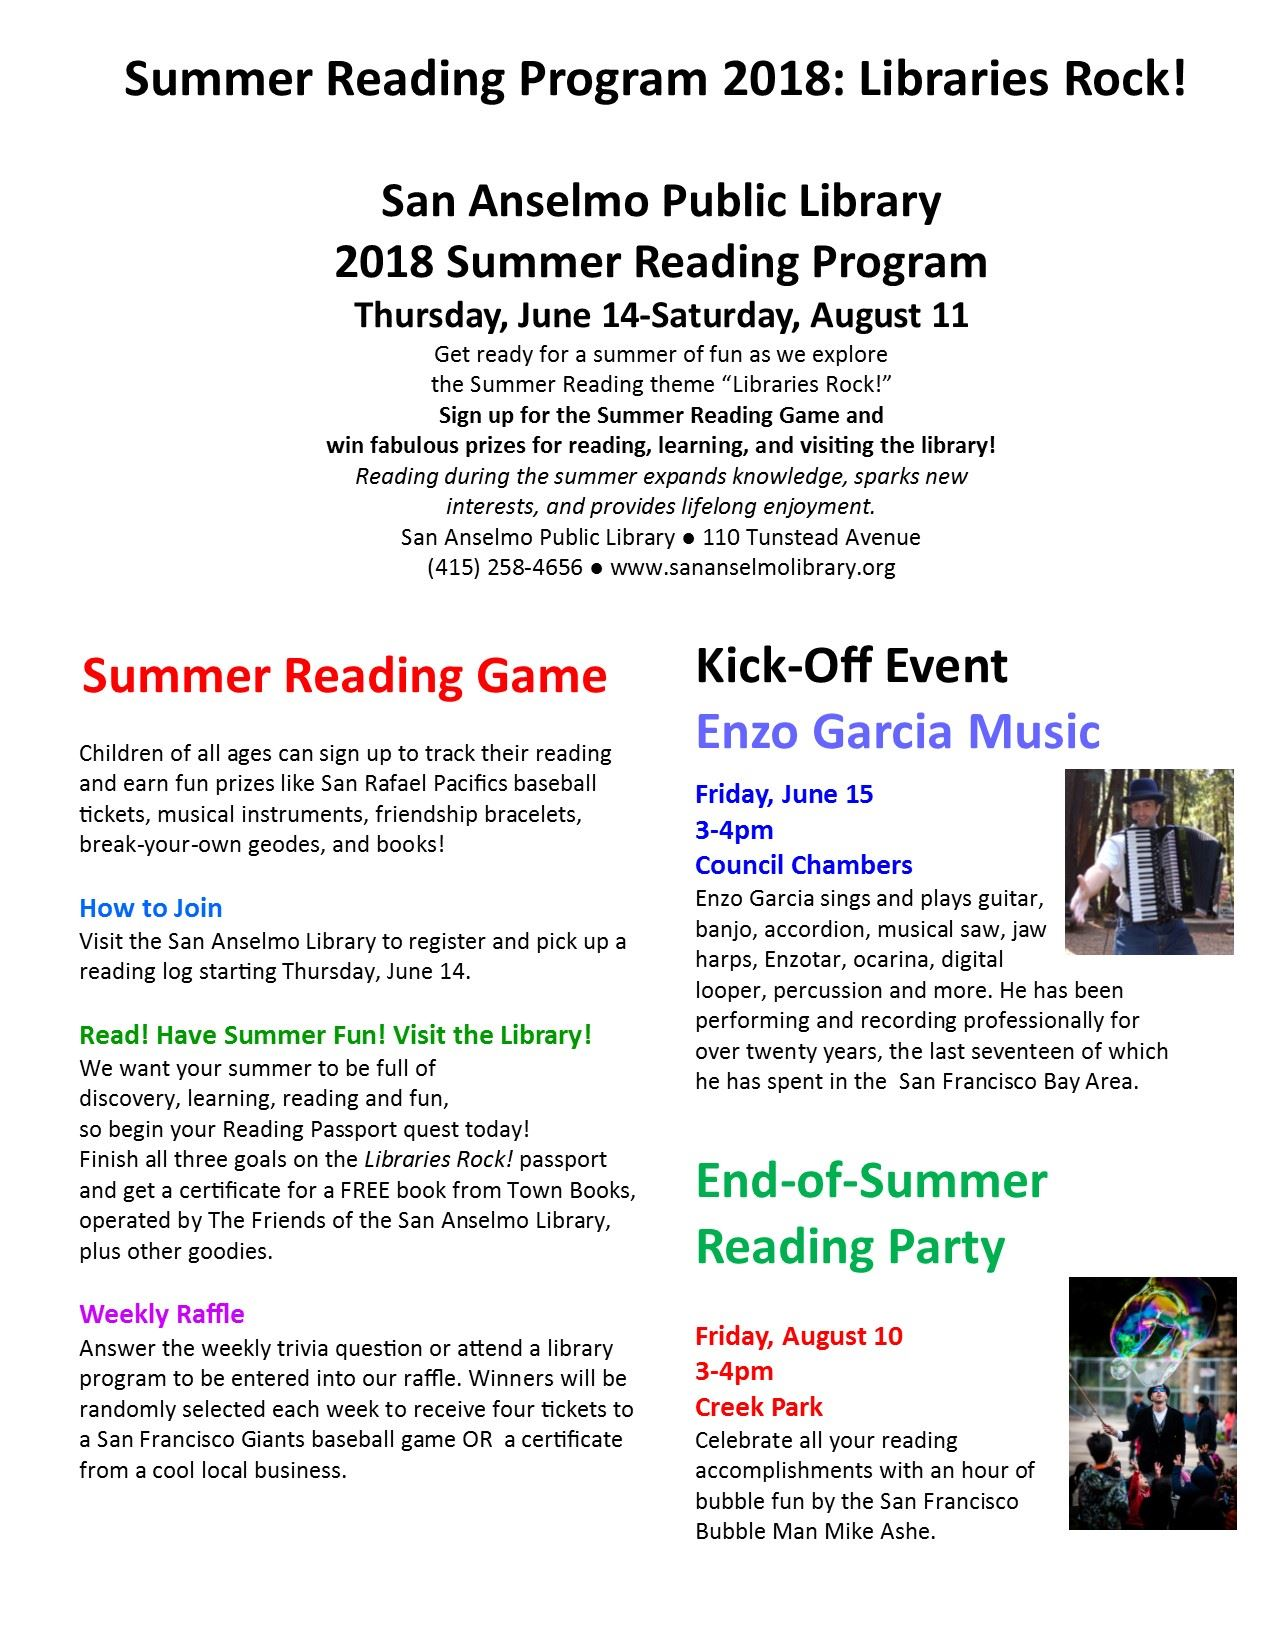 ChildrenSummer Events Calendar 2018 Page 2